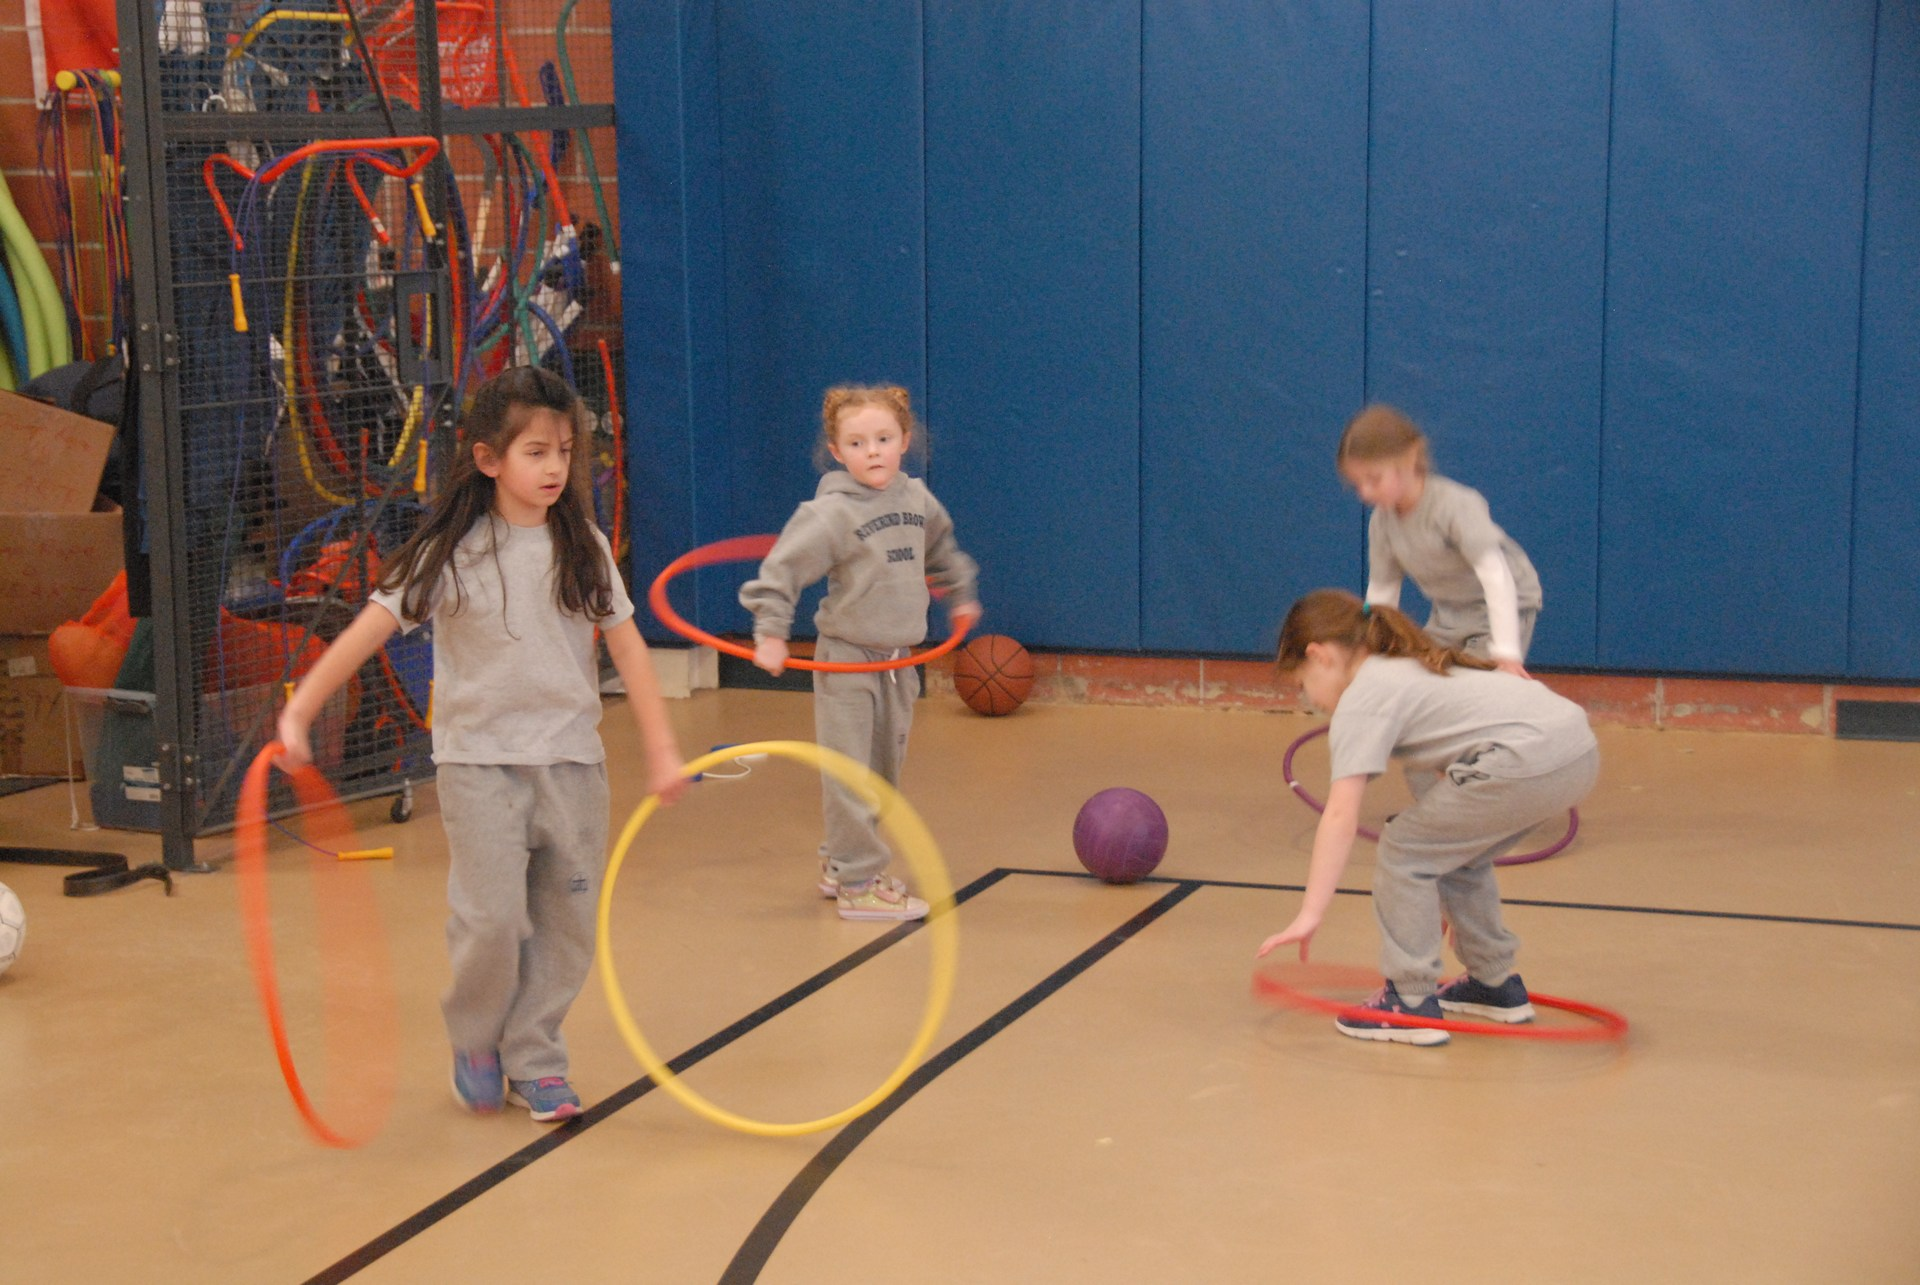 Students practice with hula hoops